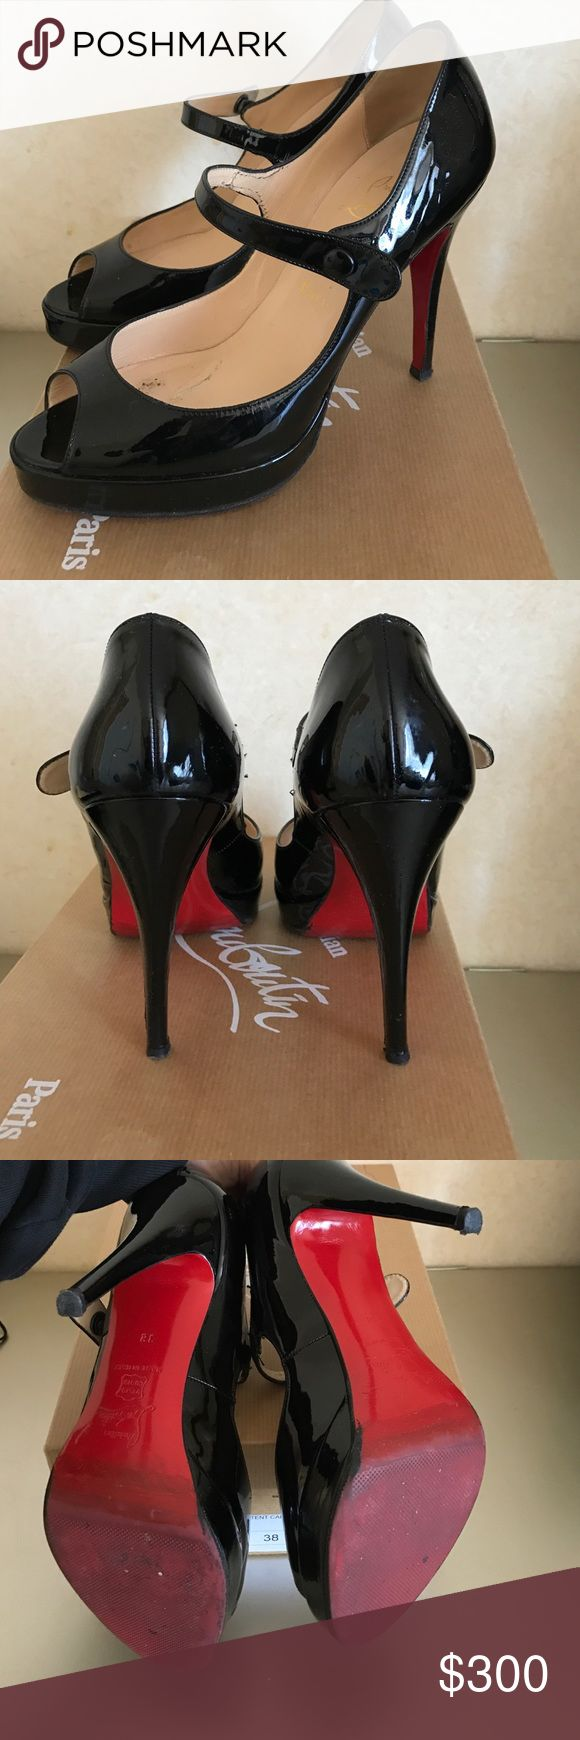 Christian Louboutin Maryjane Excellent condition CL shoes in patents leather. Had protective soles out on before wear. Come with box. One of the snaps closure are slightly stretched. Christian Louboutin Shoes Heels